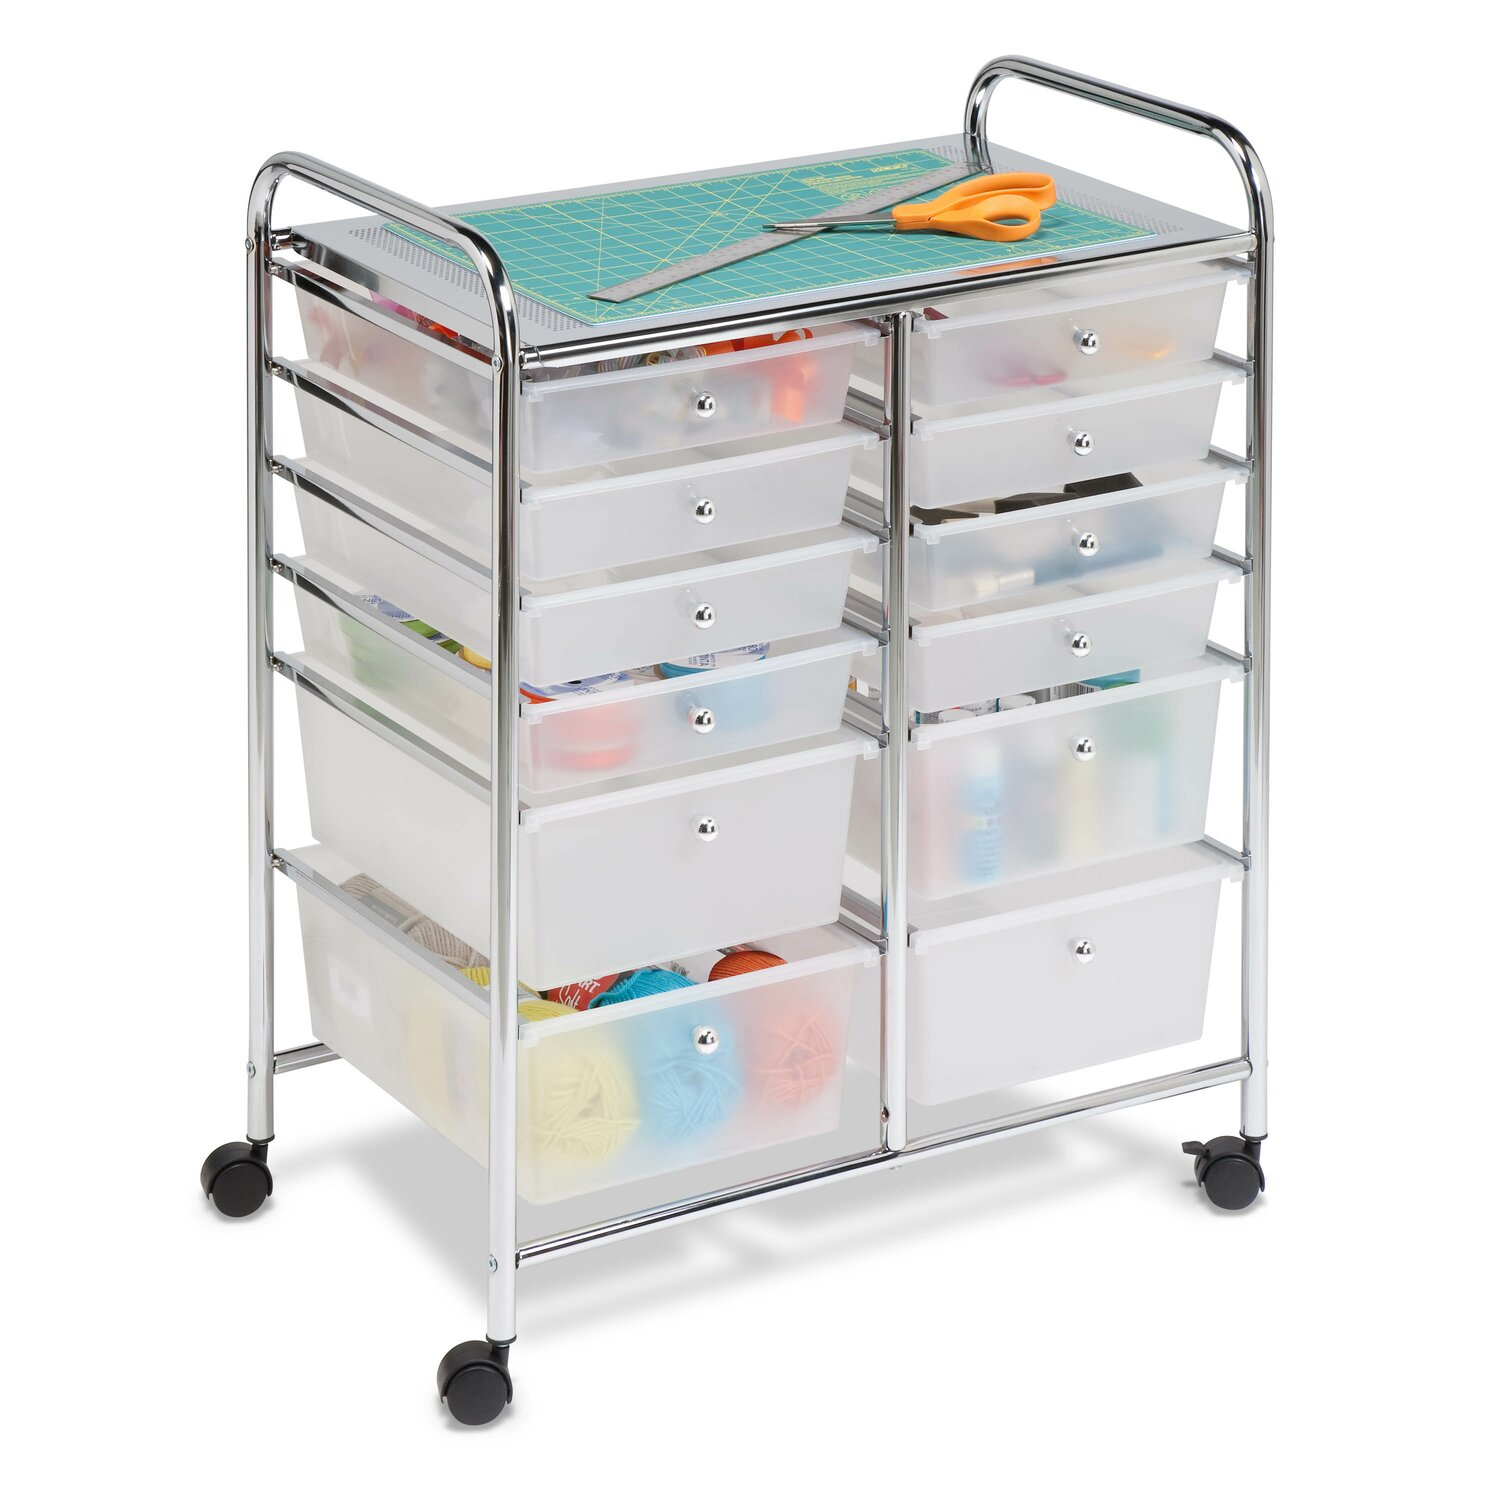 a rolling cart full of drawers to hold your crafting supplies